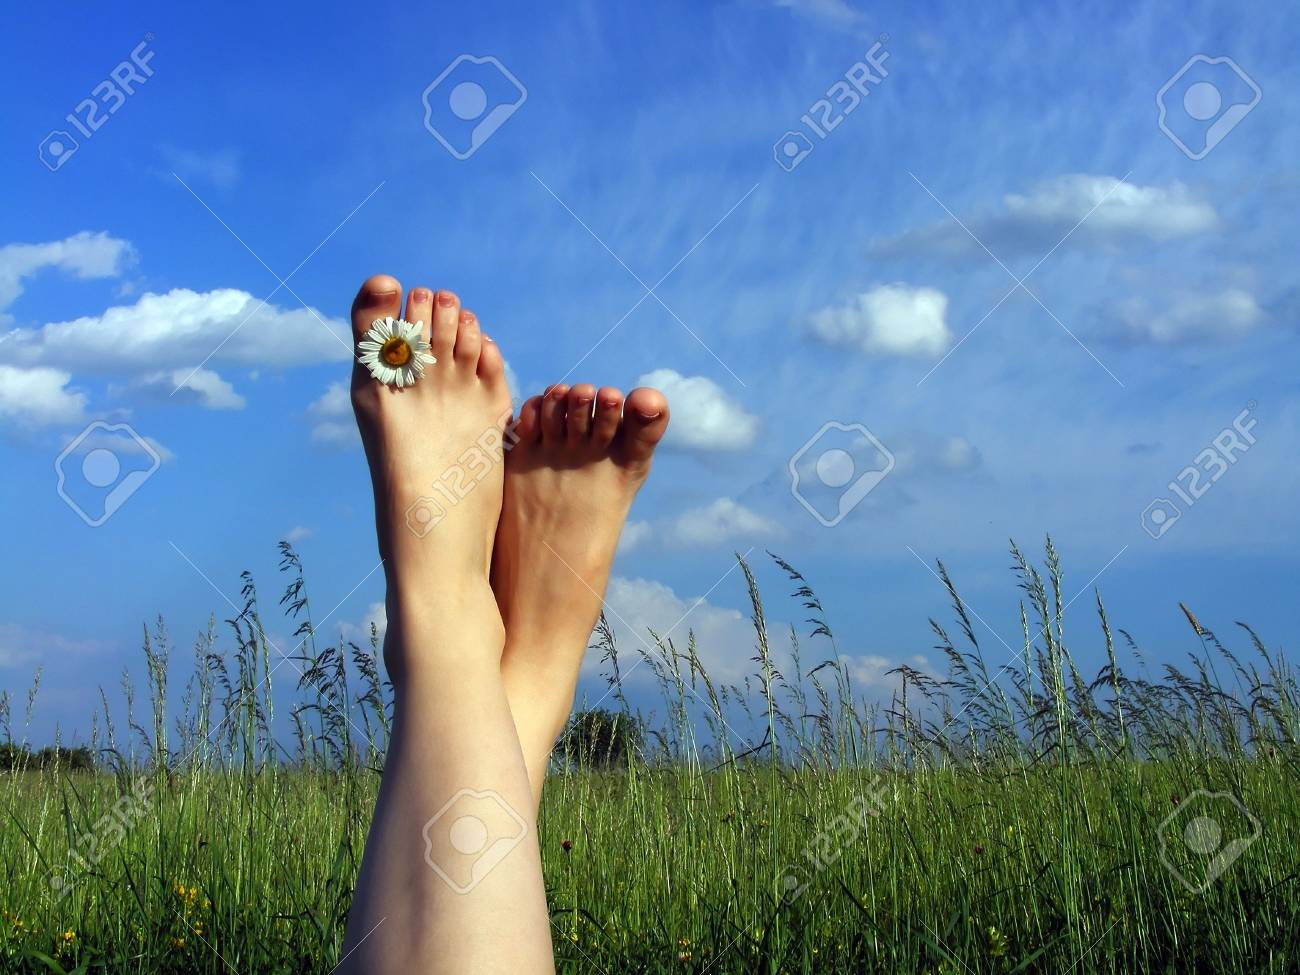 Resting on the grass Stock Photo - 3100392